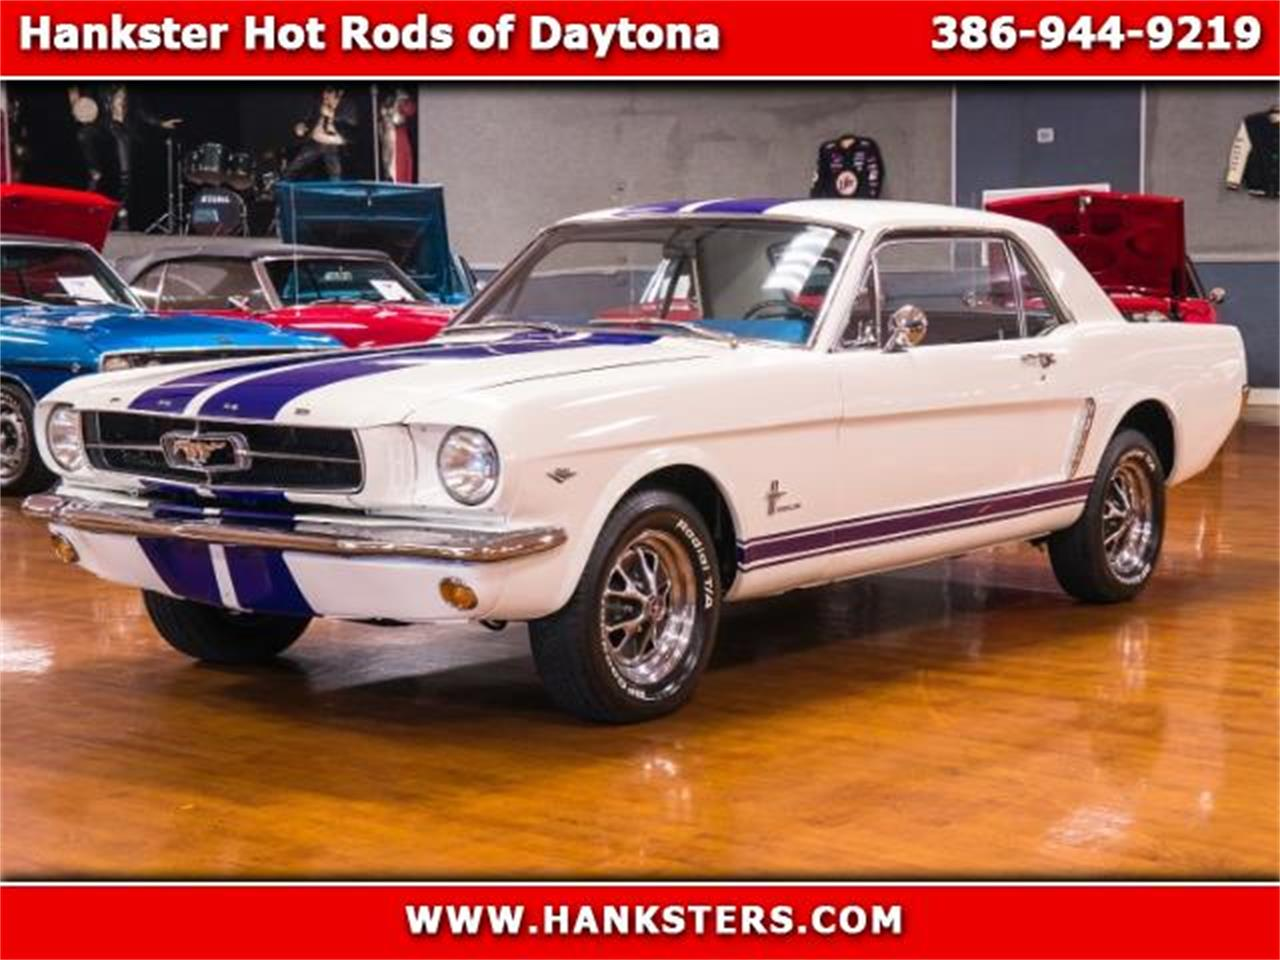 Large Picture of 1965 Ford Mustang located in Indiana Pennsylvania - $24,900.00 - NHVG